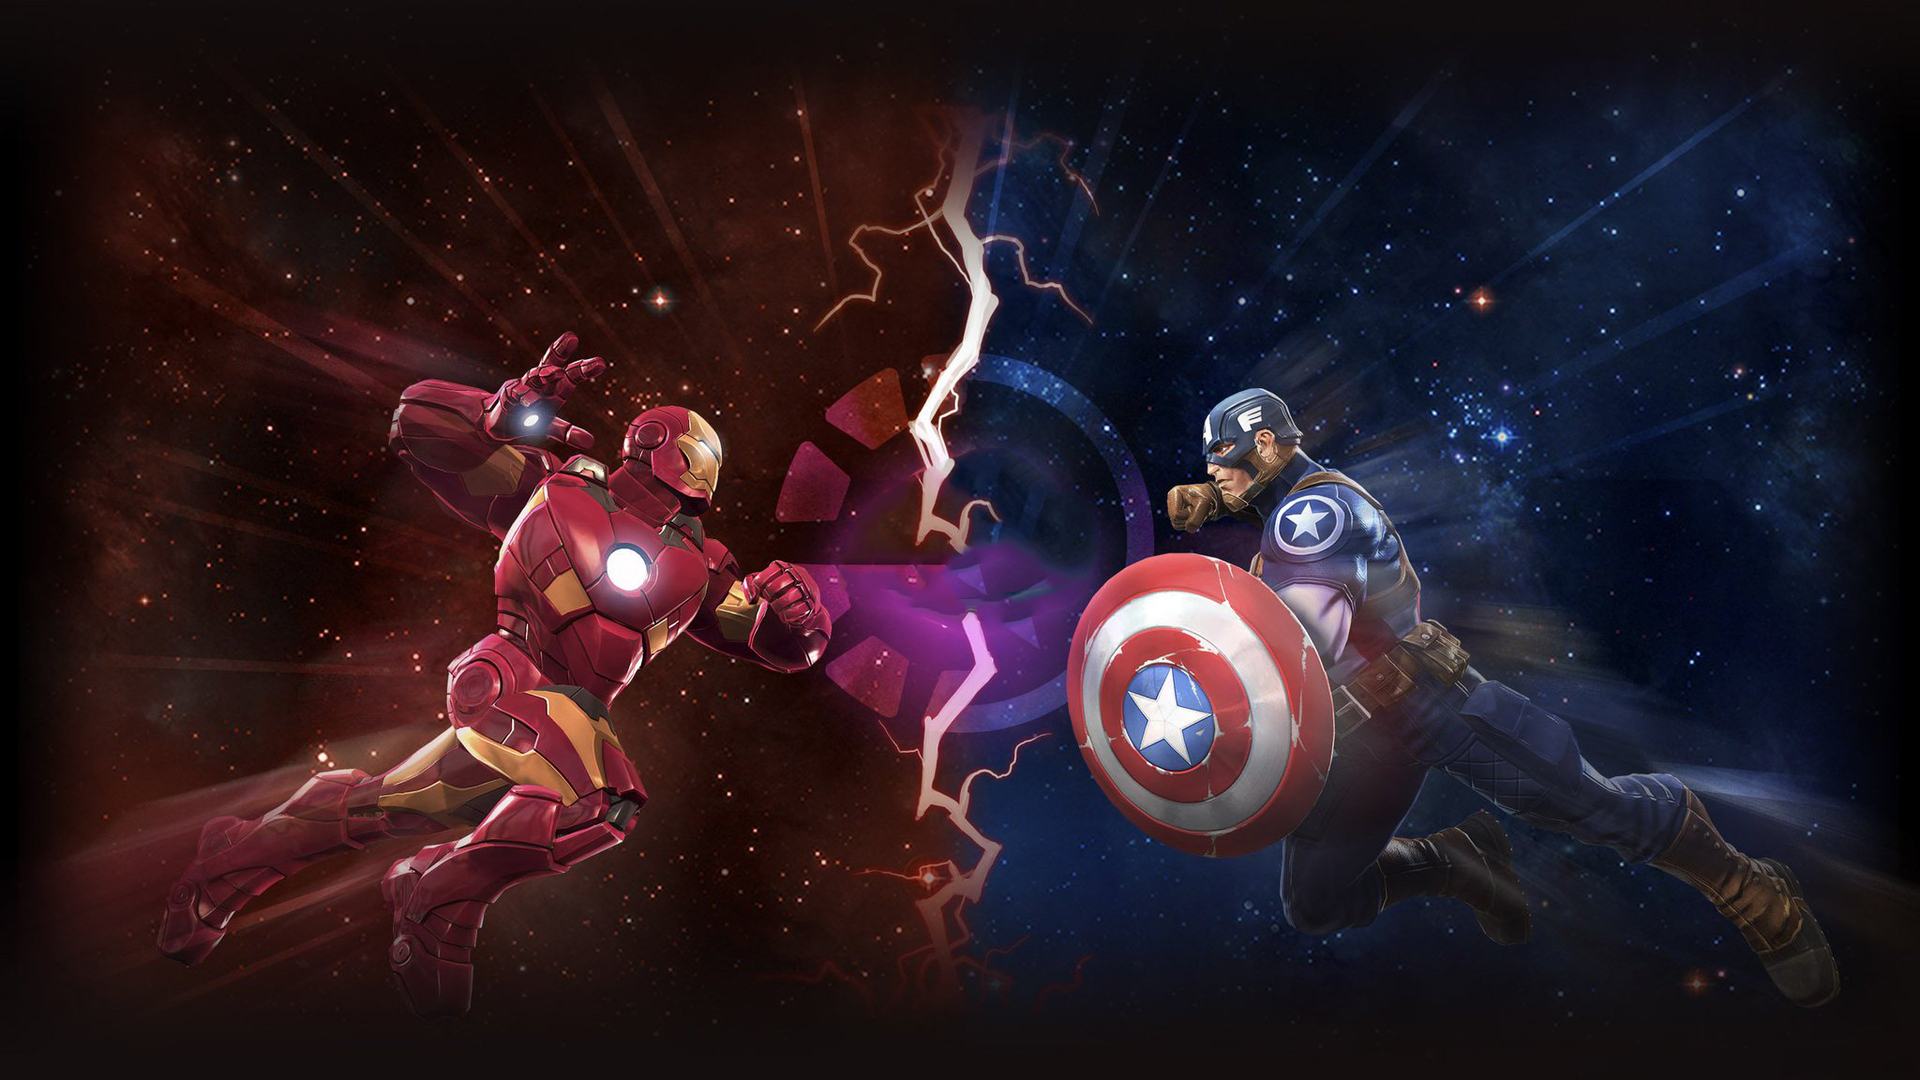 Download Iron man and captain america 1080p